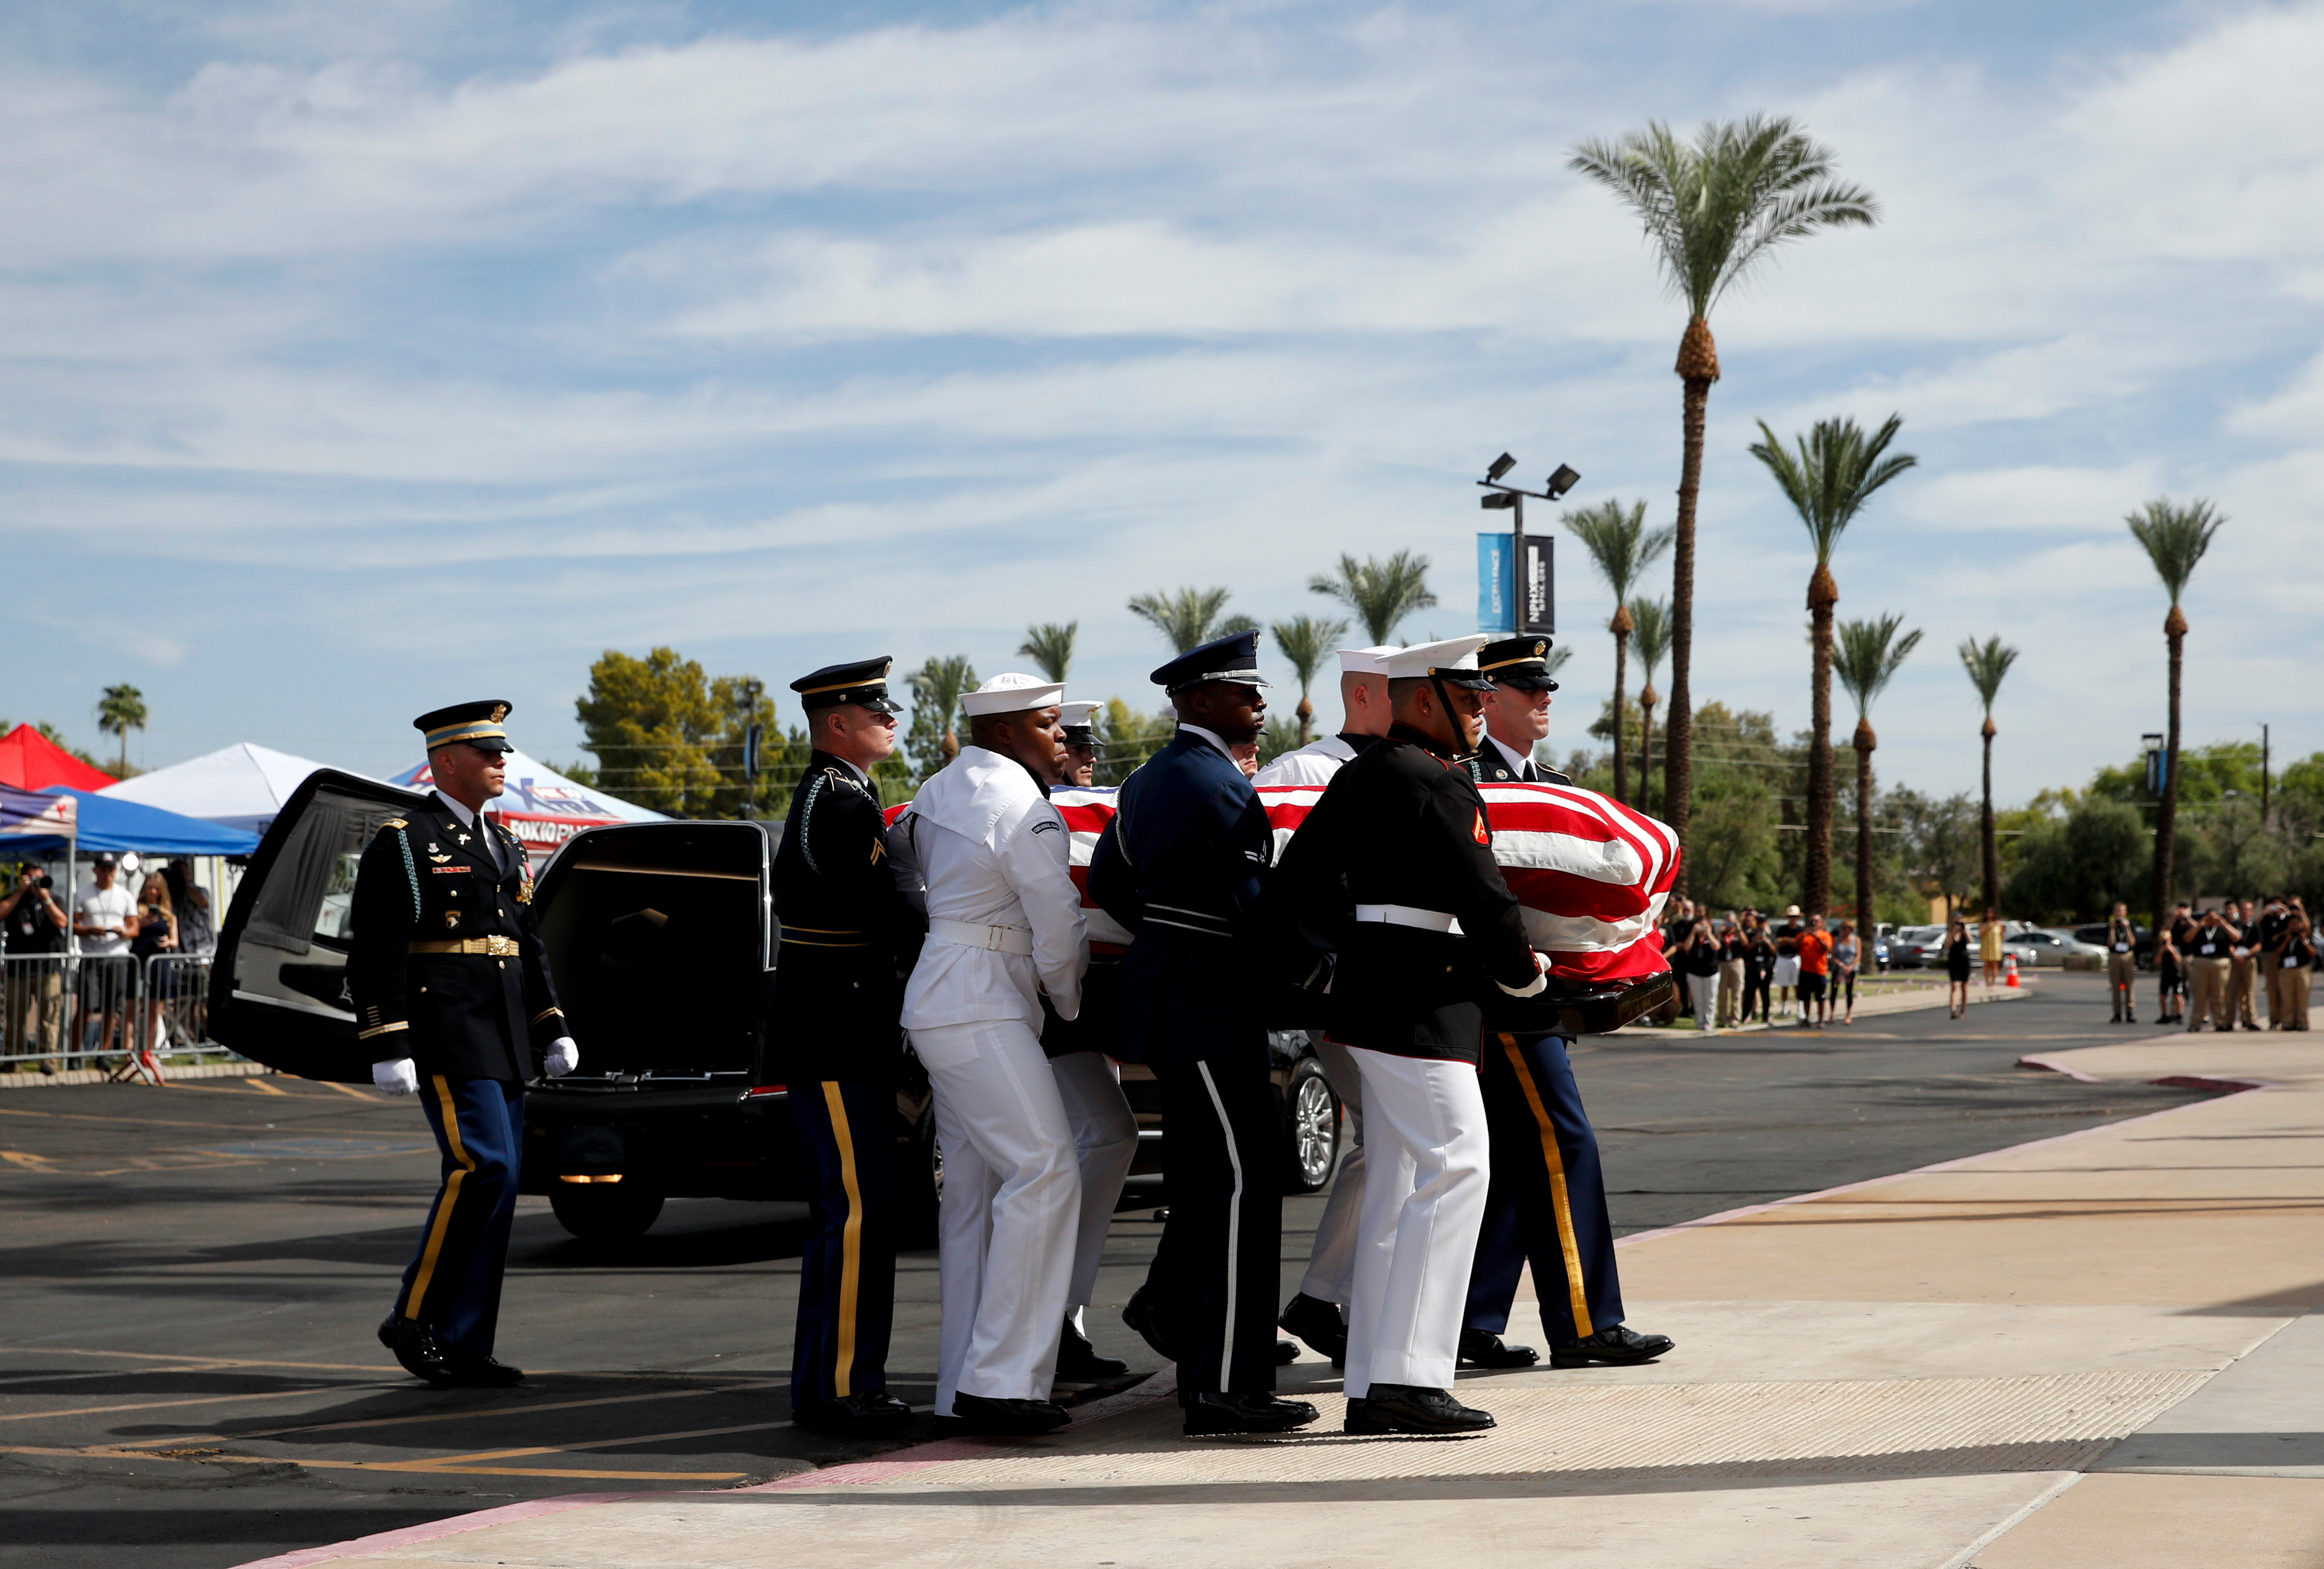 The honor guard carries the casket into the North Phoenix Baptist Church for a memorial service for Sen. John McCain, in Phoenix, Ariz., on Aug. 30, 2018.